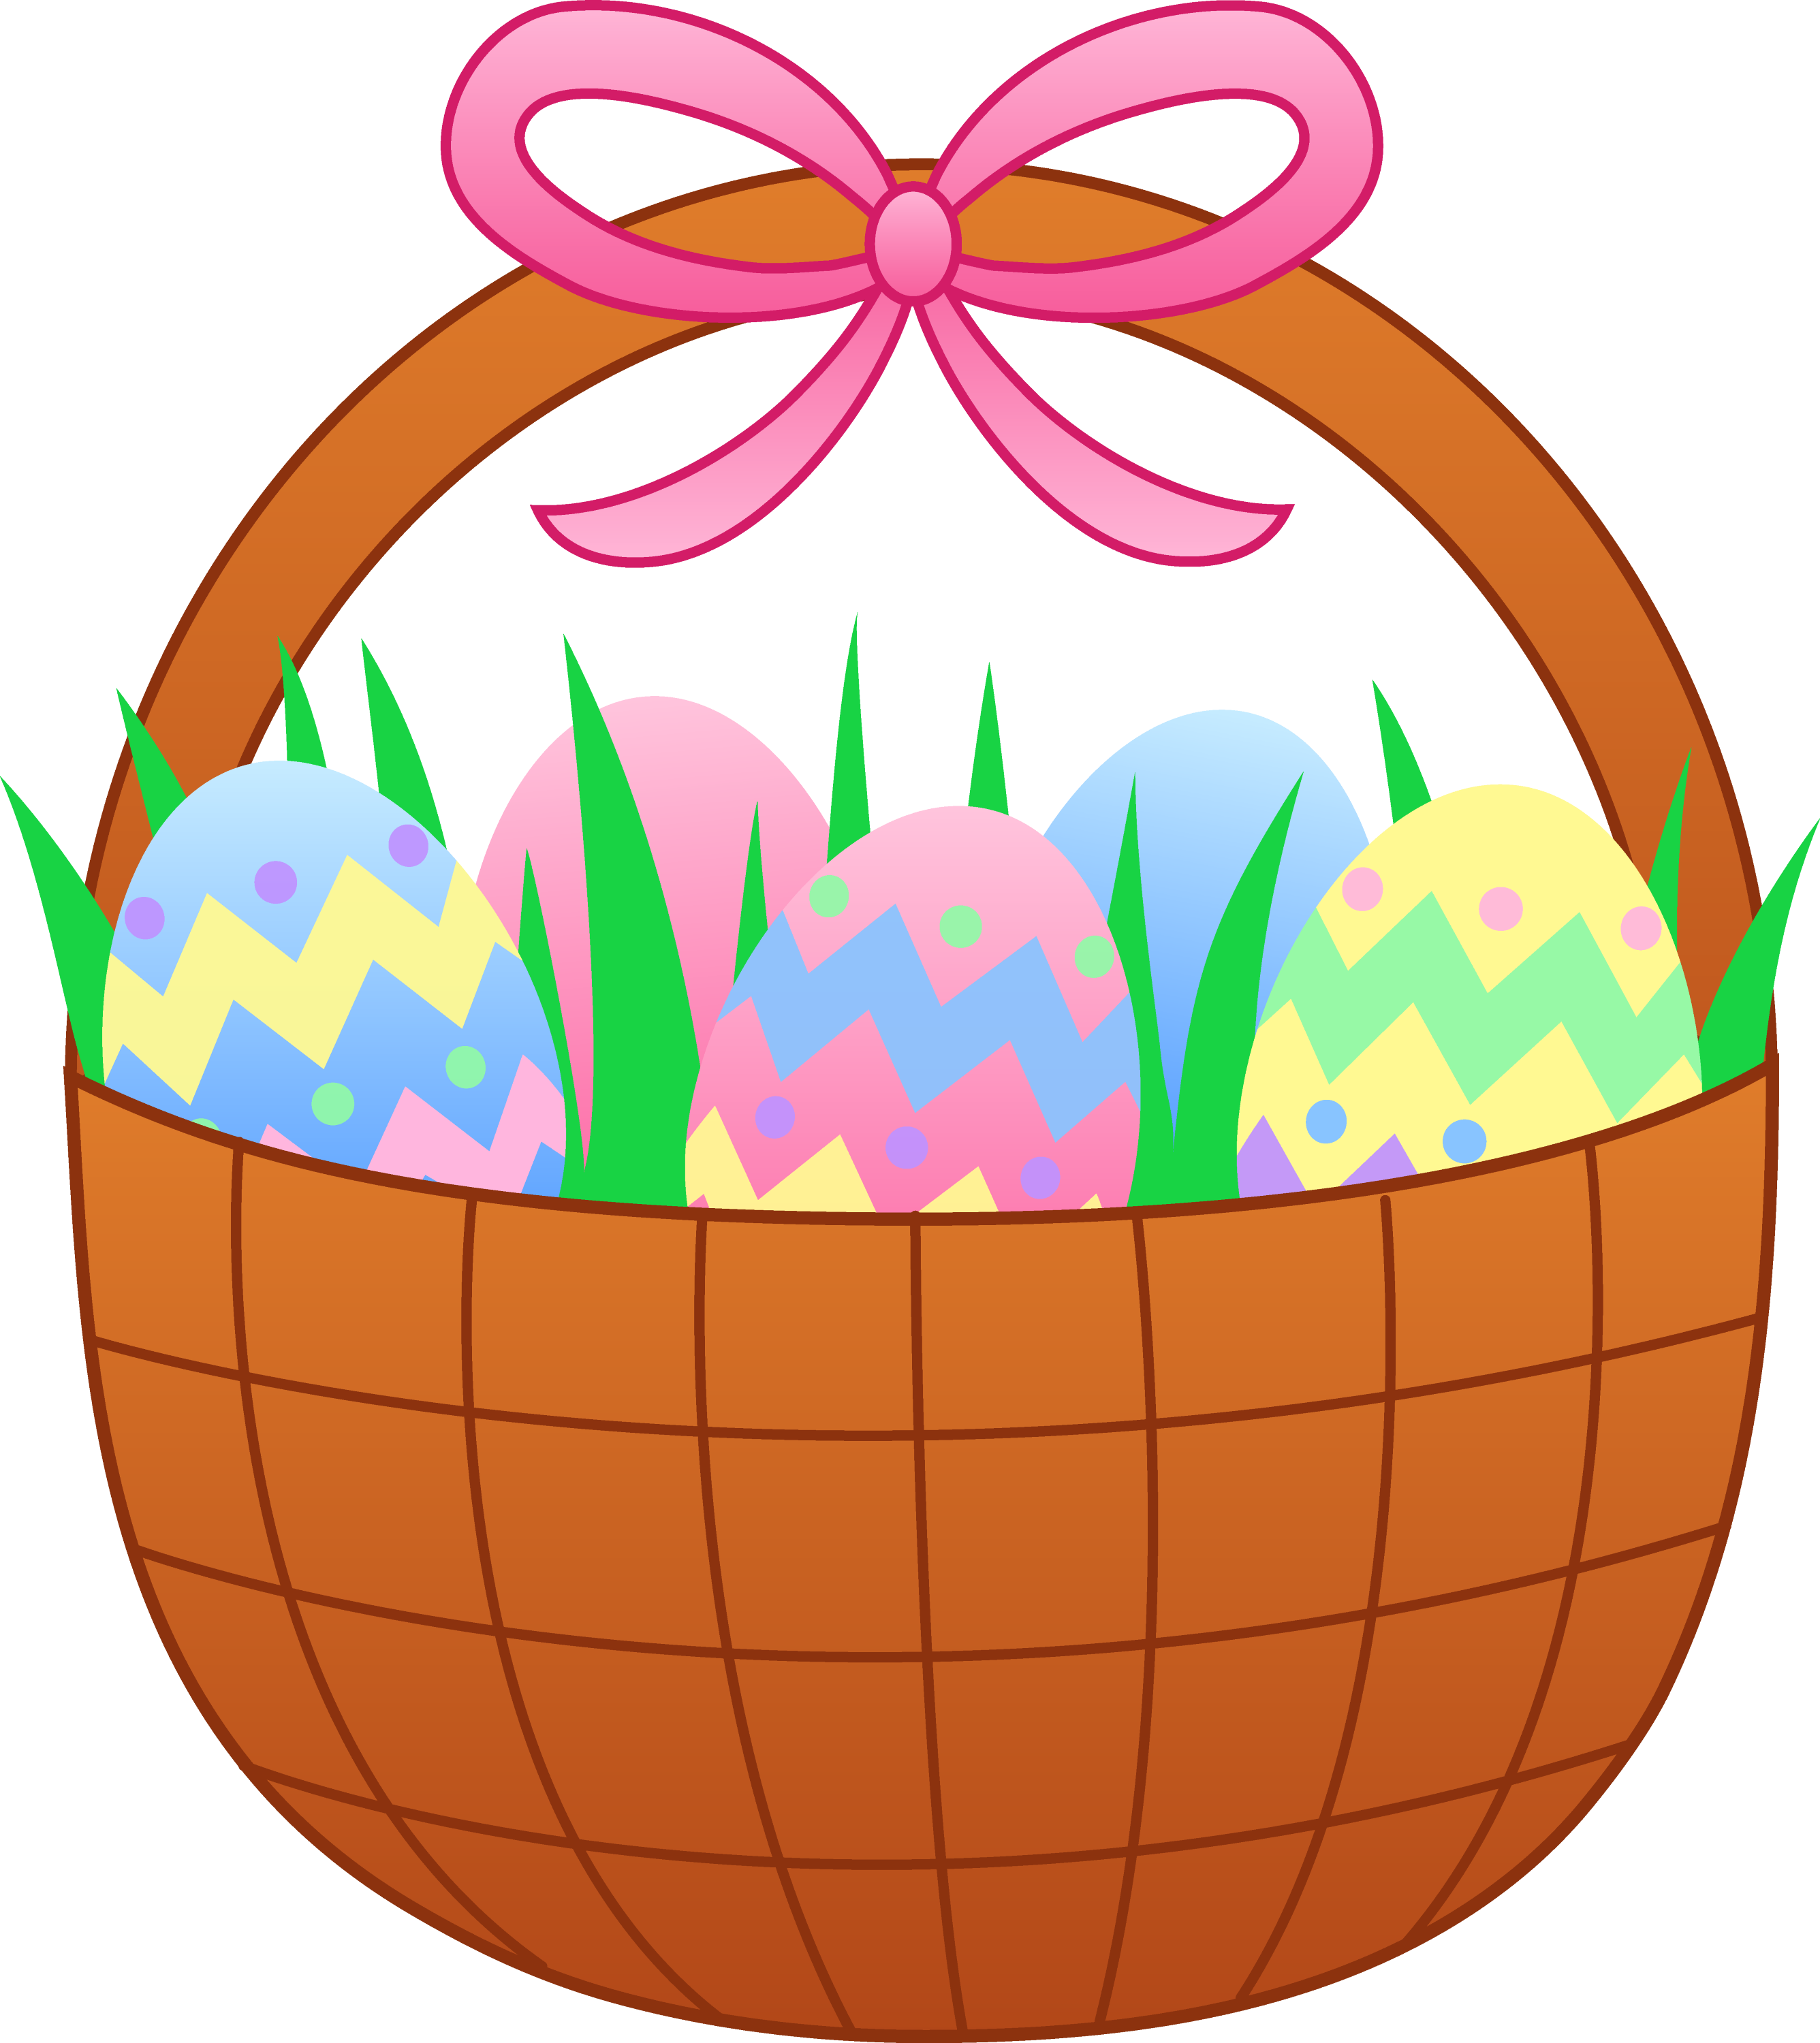 easter basket with colorful eggs free clip art rh sweetclipart com empty easter basket clipart easter basket clipart black and white